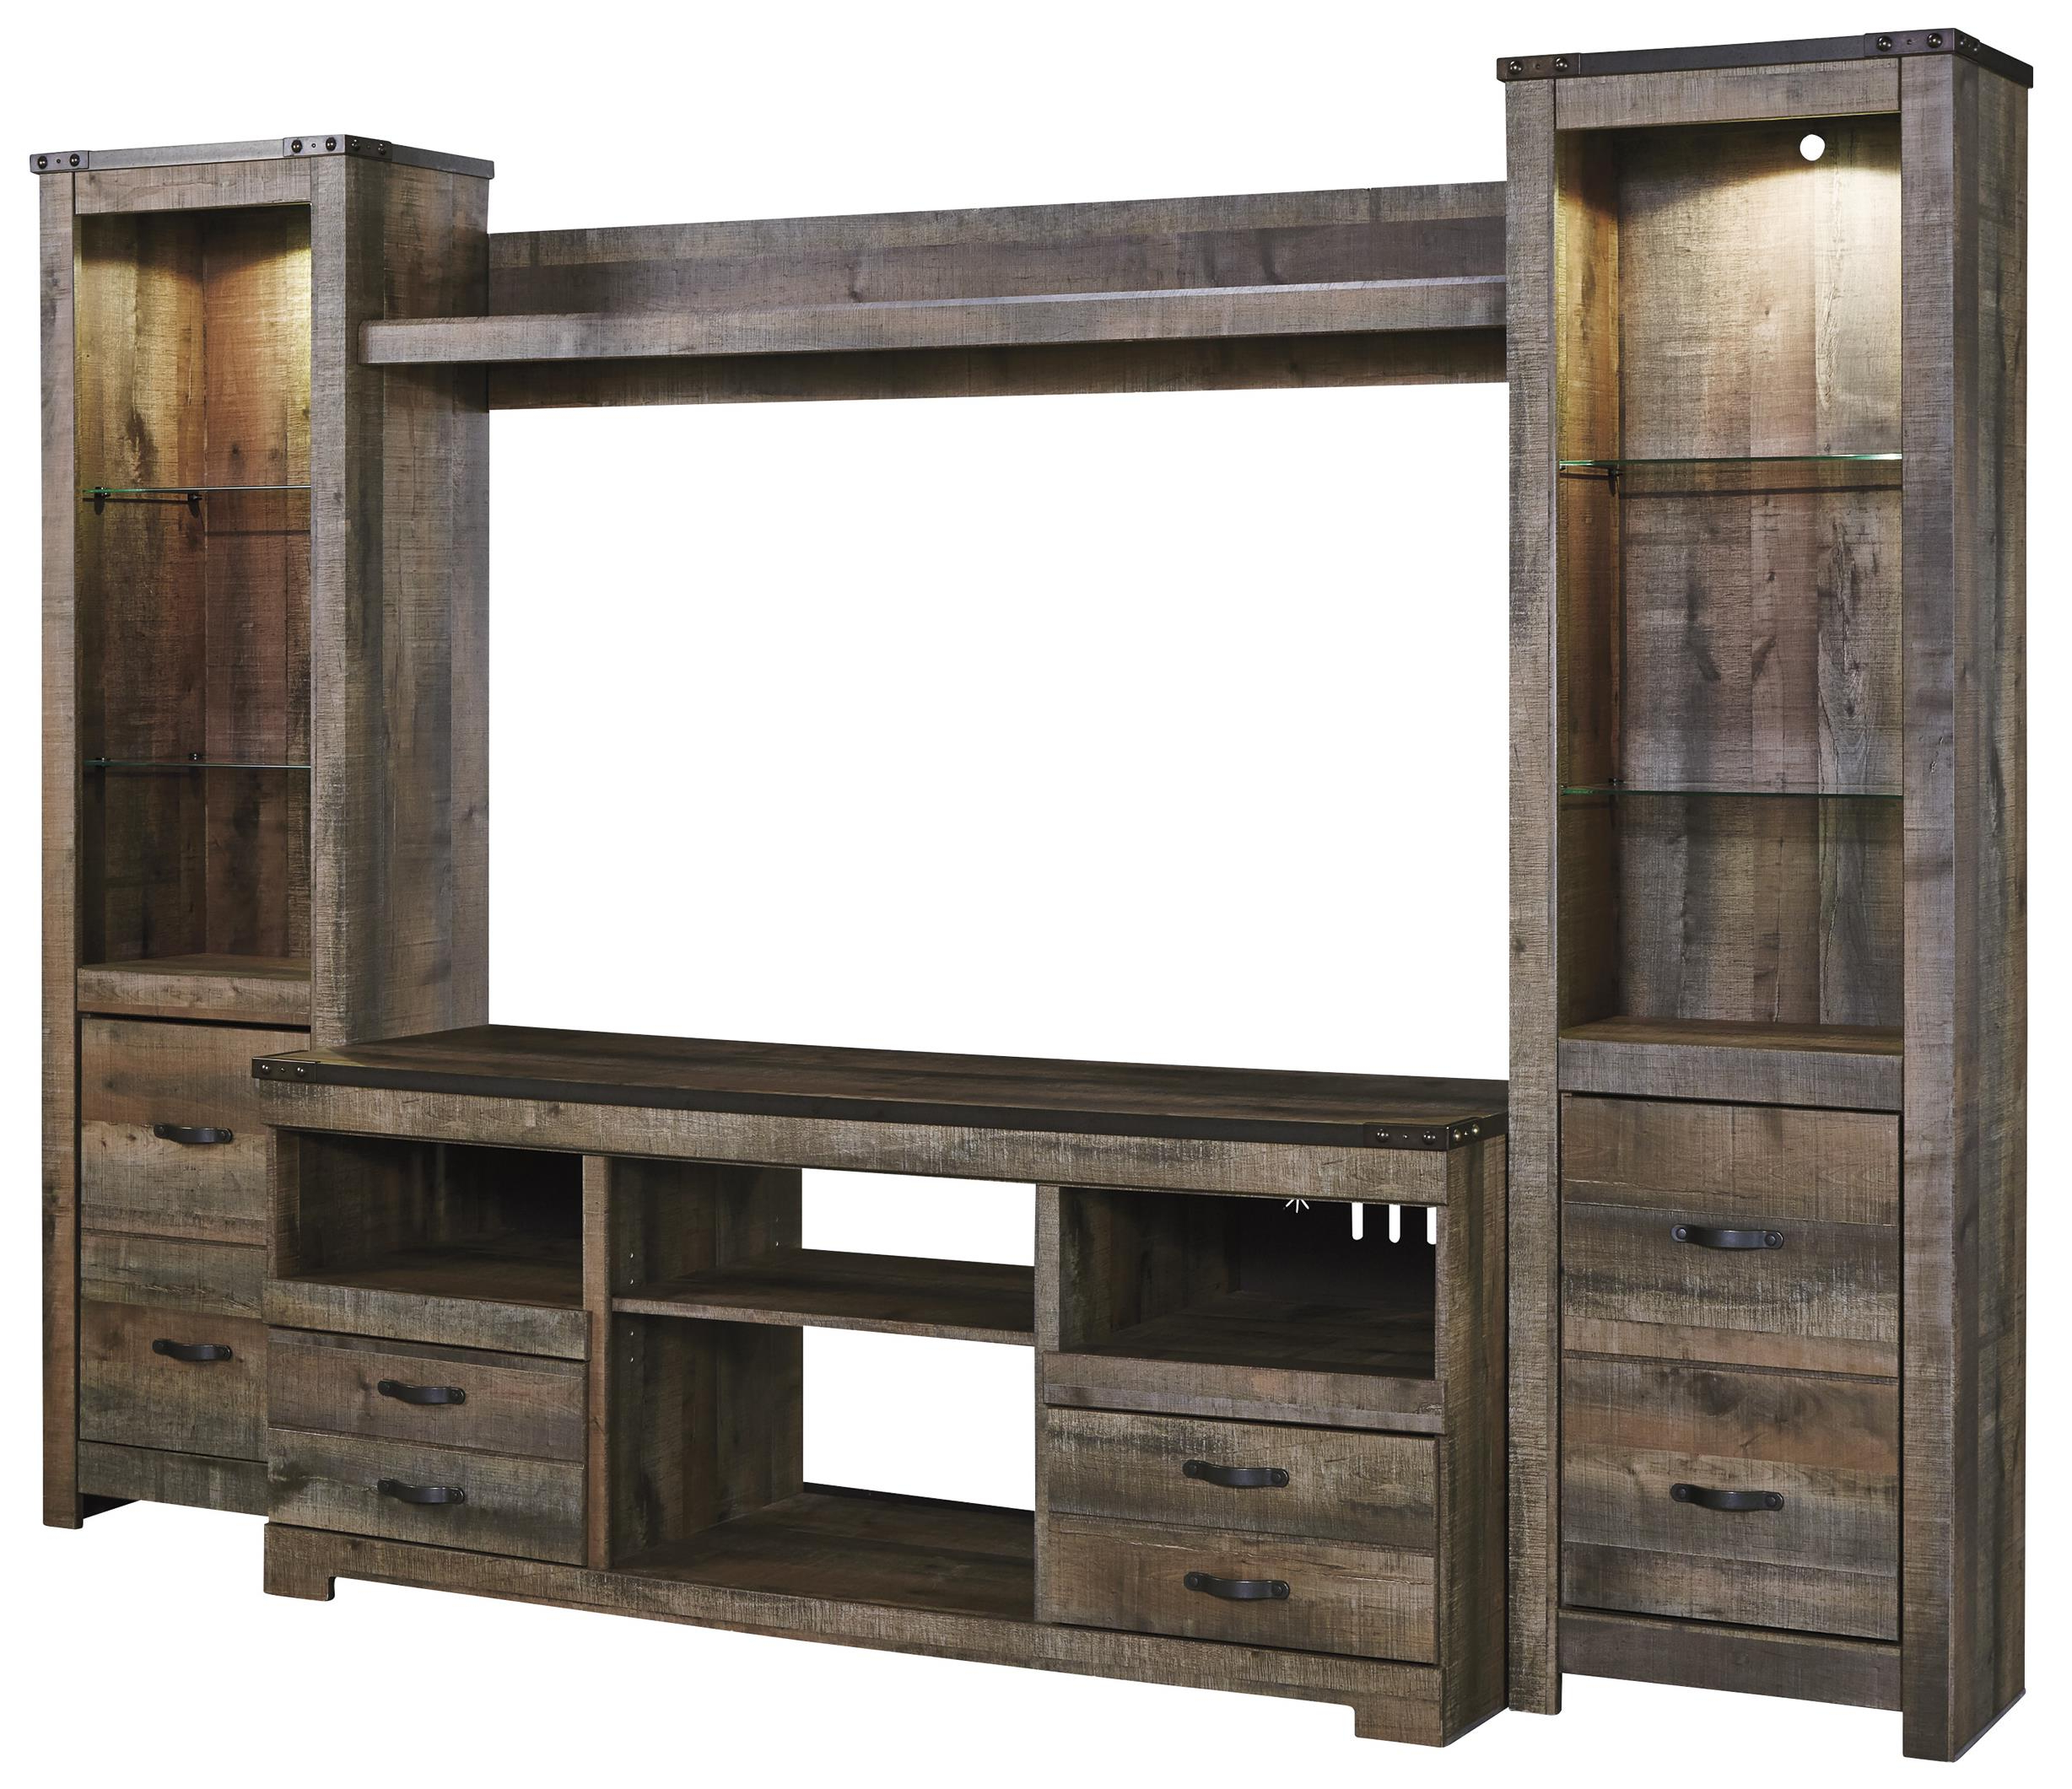 Urban Rustic Rustic Large Tv Stand & 2 Tall Piers W/ Bridge Regarding Favorite Rustic Tv Stands (Gallery 6 of 20)